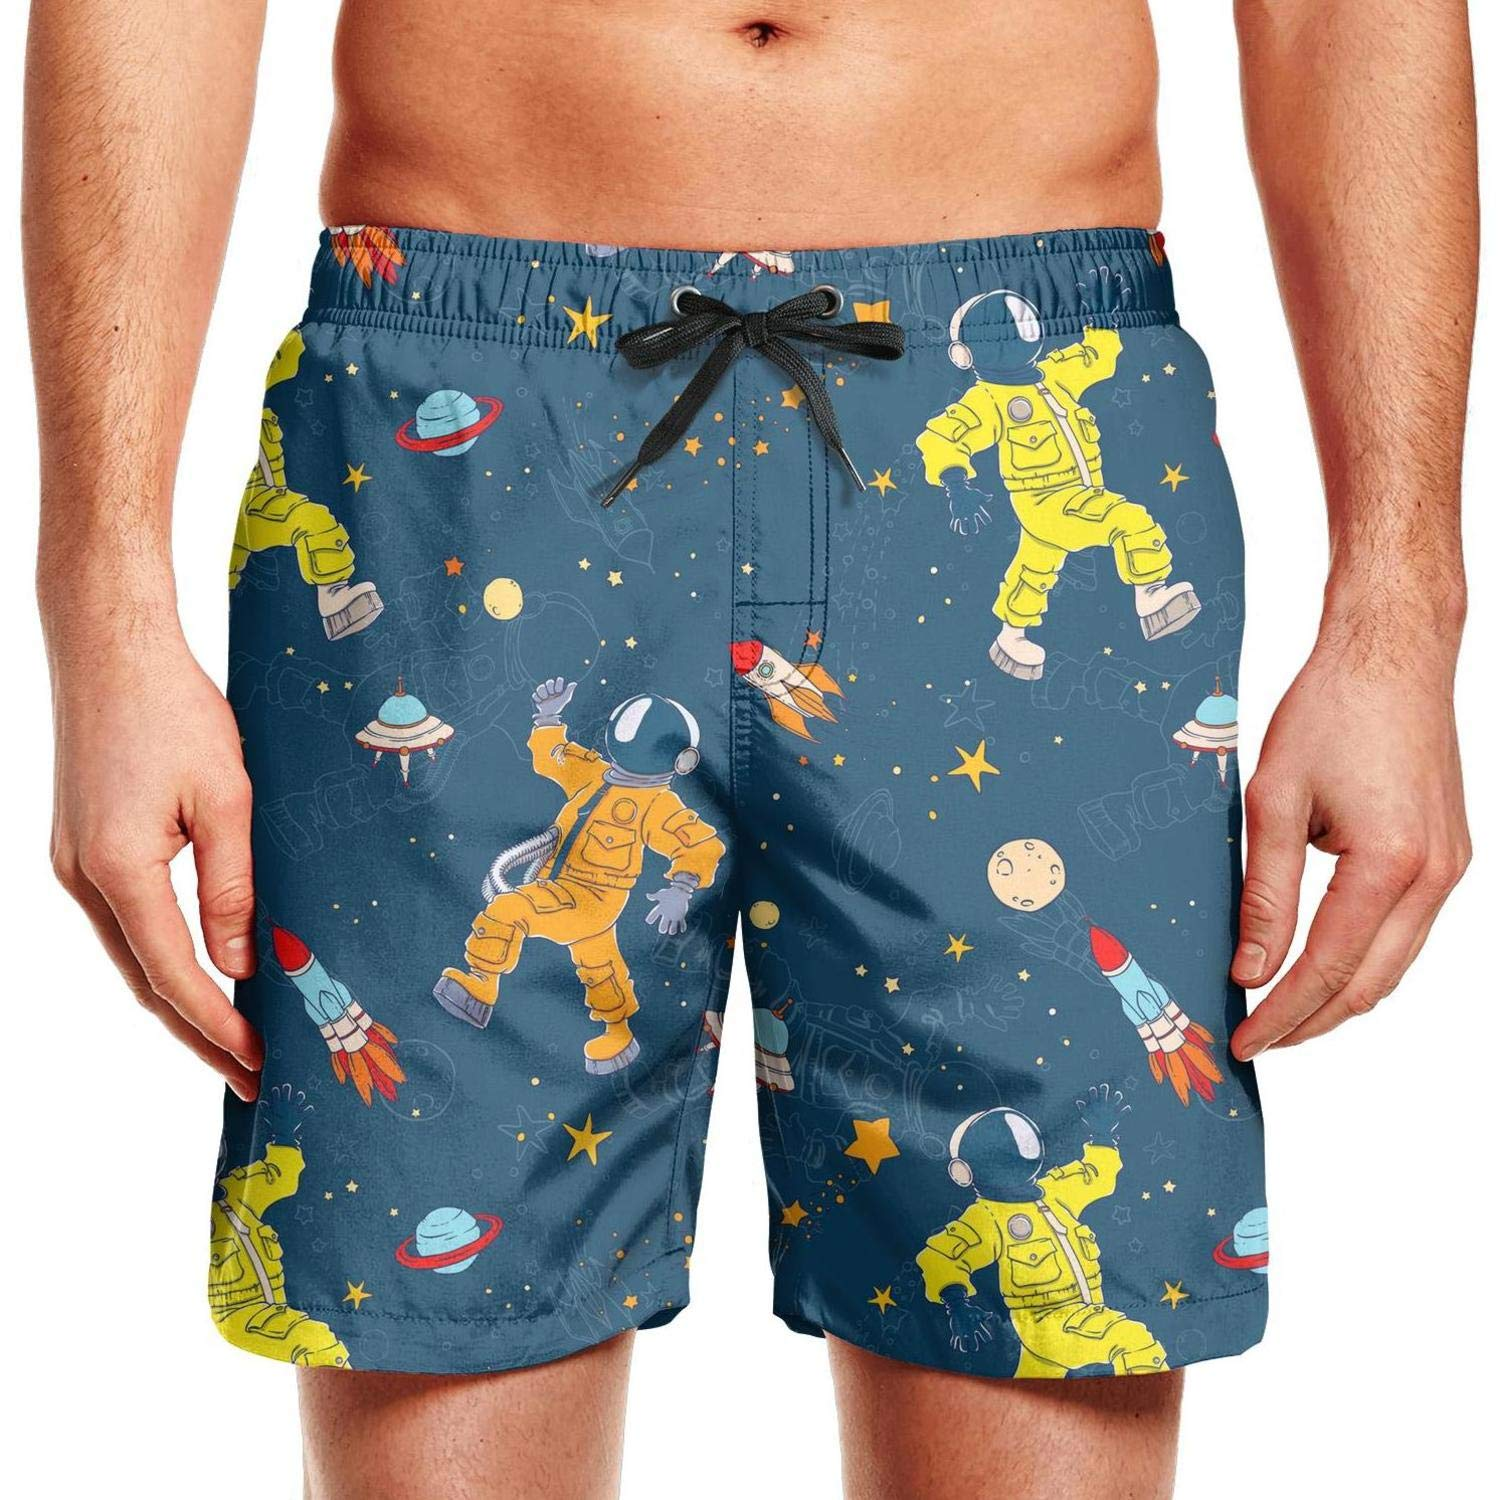 FPPING Mens Black Space Flexible Astronaut Adjustable Swimming Beach Swim Trunk